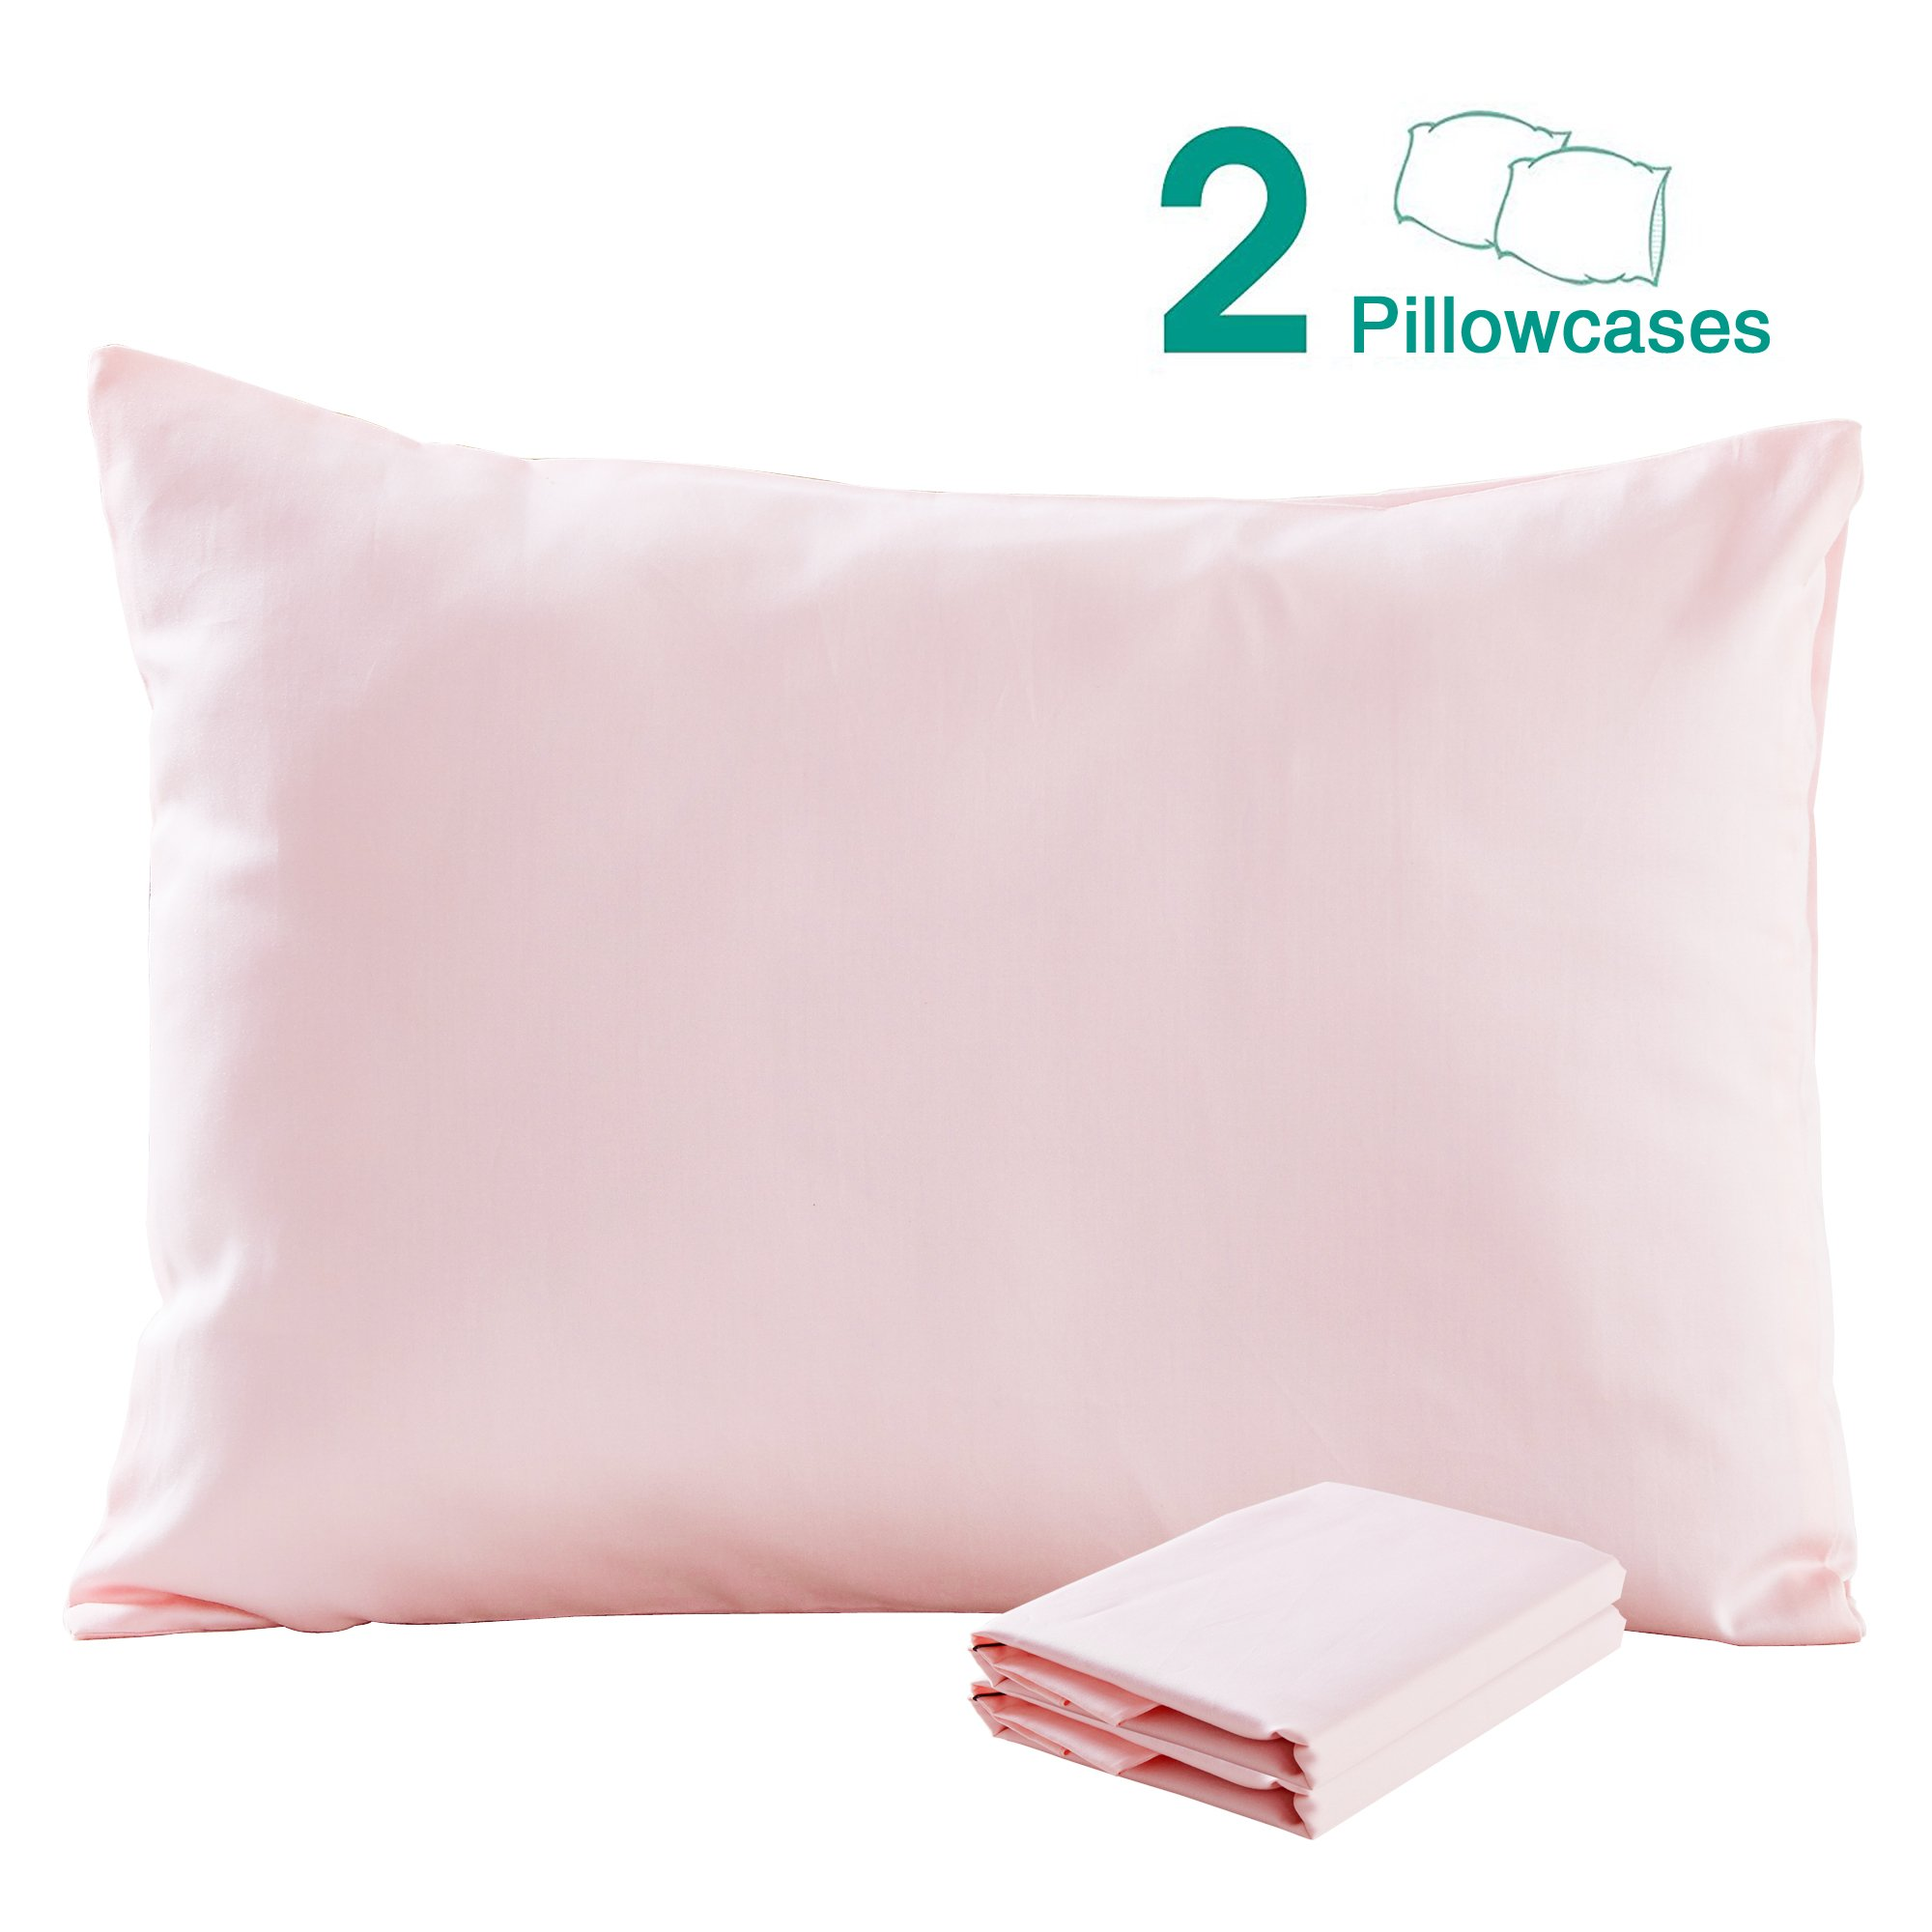 """100% Cotton Sateen Toddler Pillowcases Set of 2, Soft and Cozy, 13""""x 18"""", Pink by NTBAY"""